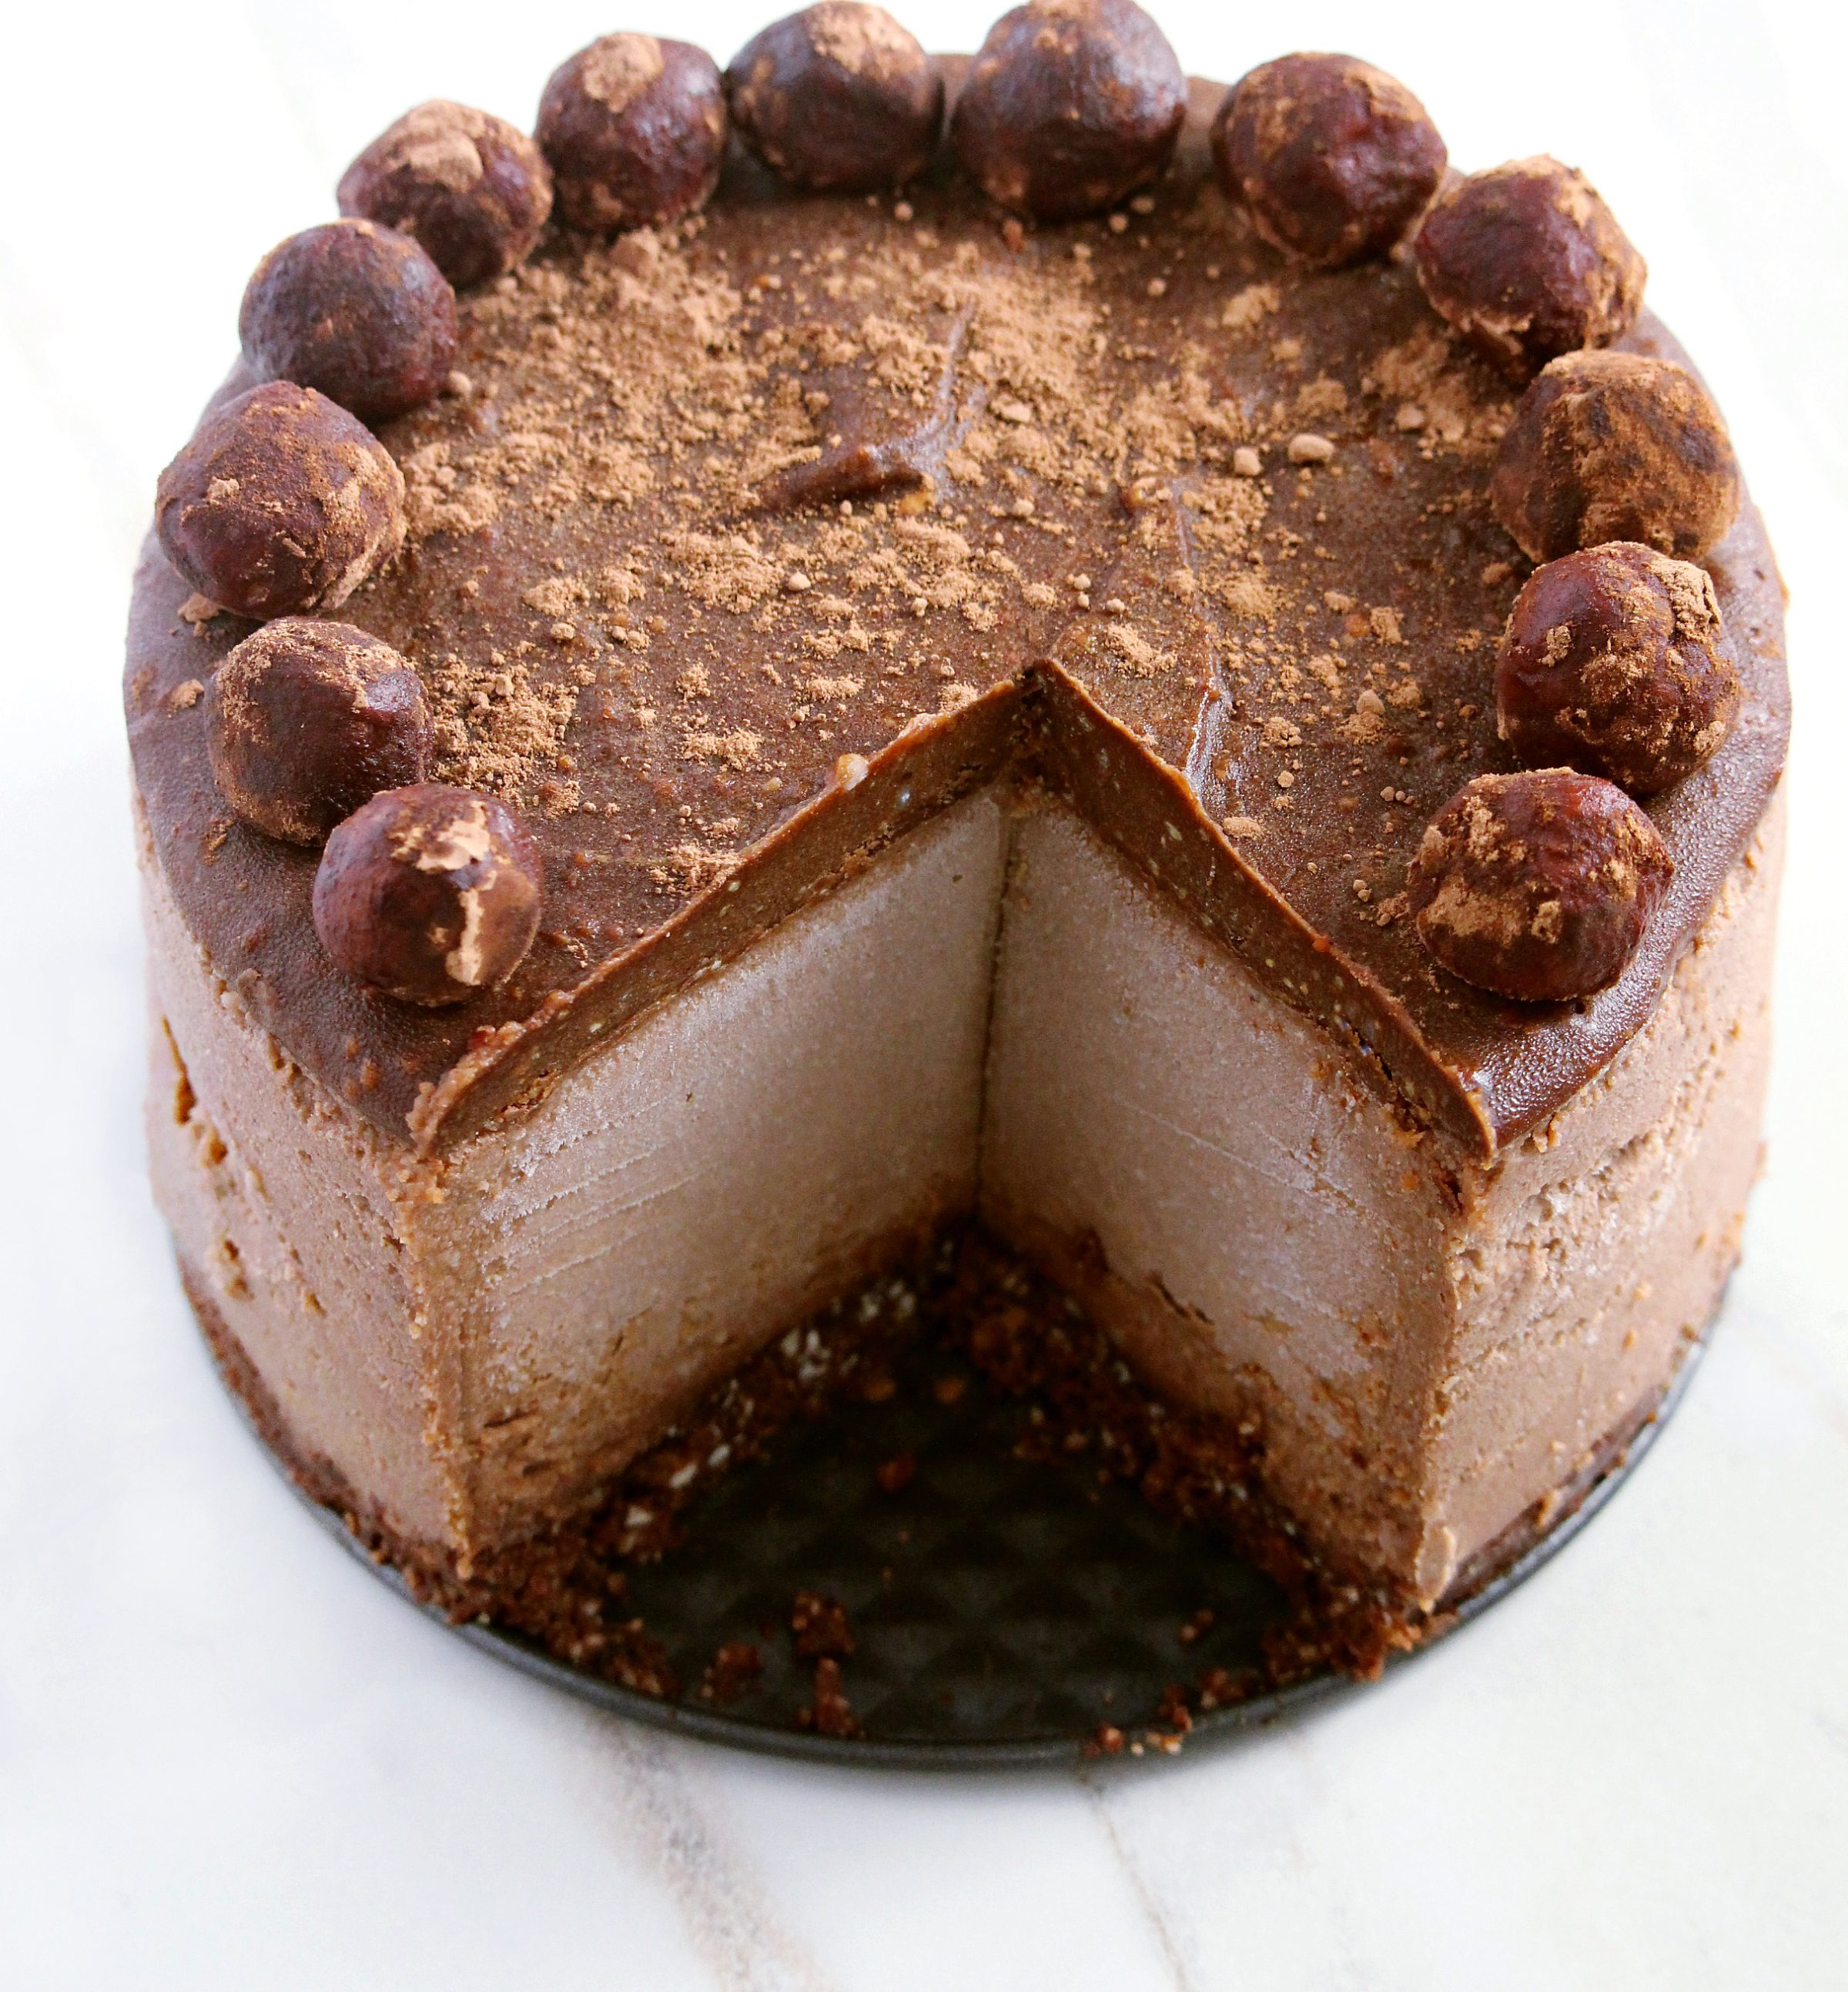 vegan, gluten-free, and refined sugar-free chocolate peanut butter cheesecake